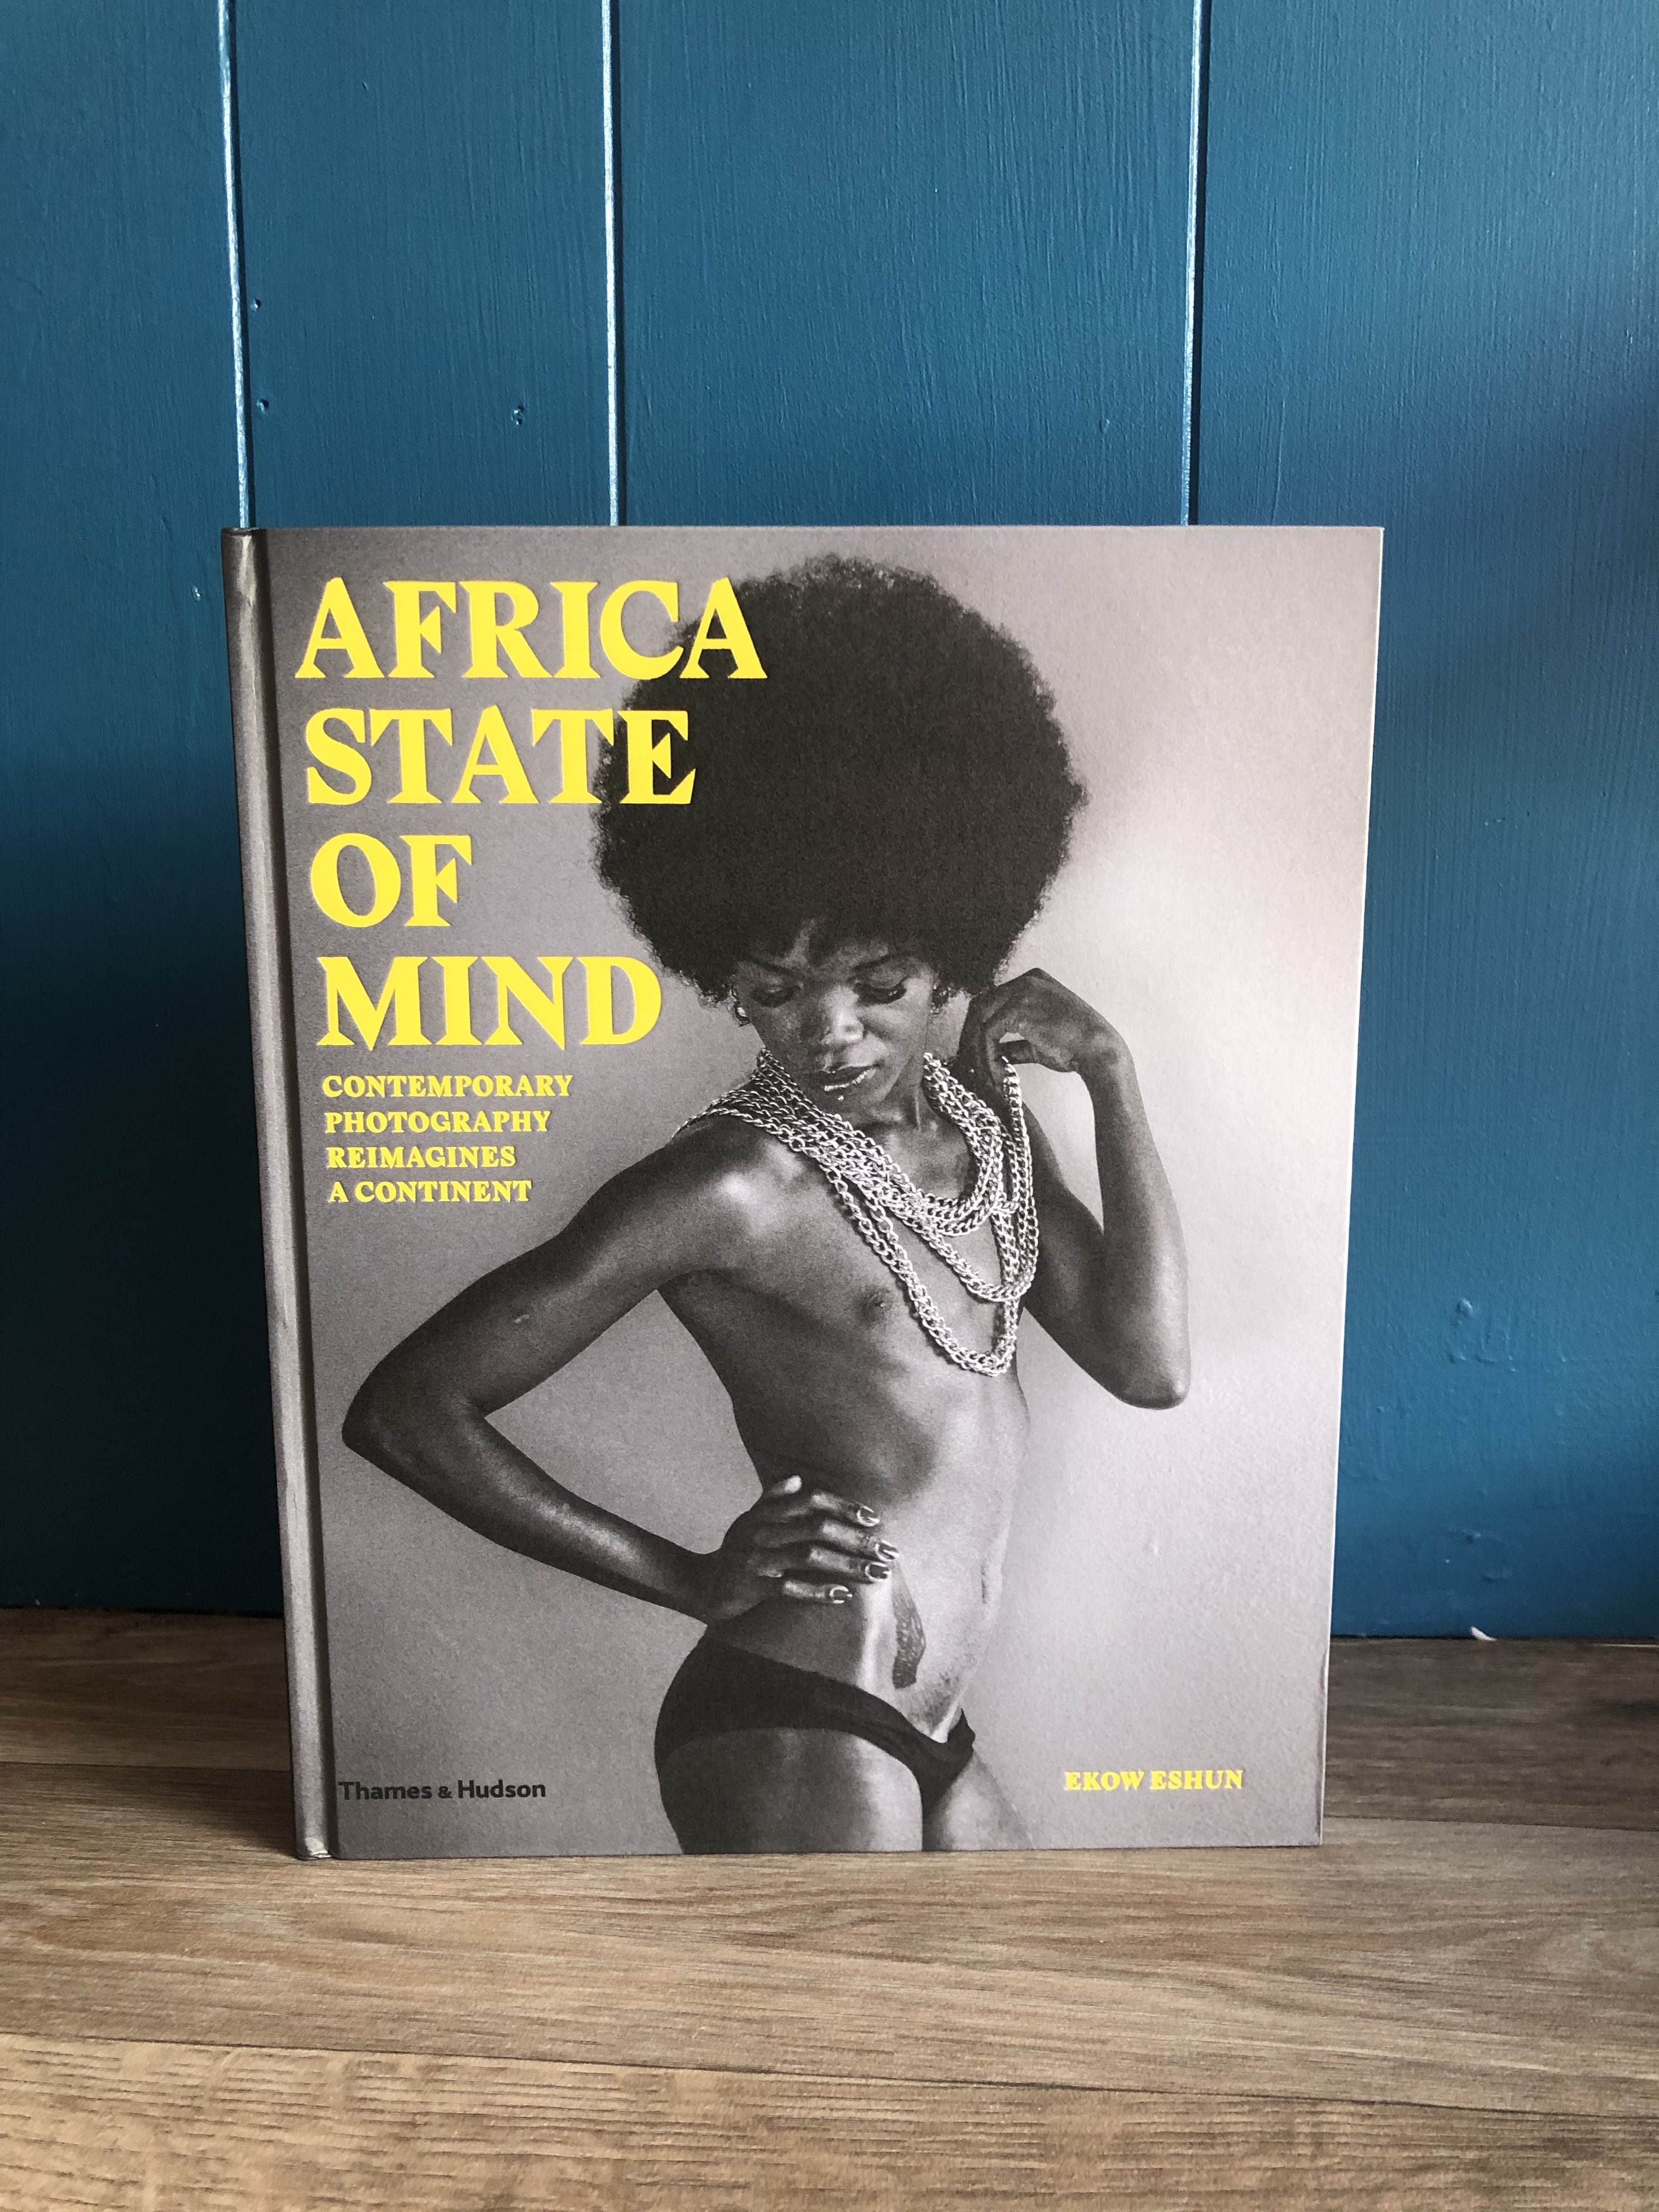 front cover of the book Africa State of mind on a blue background